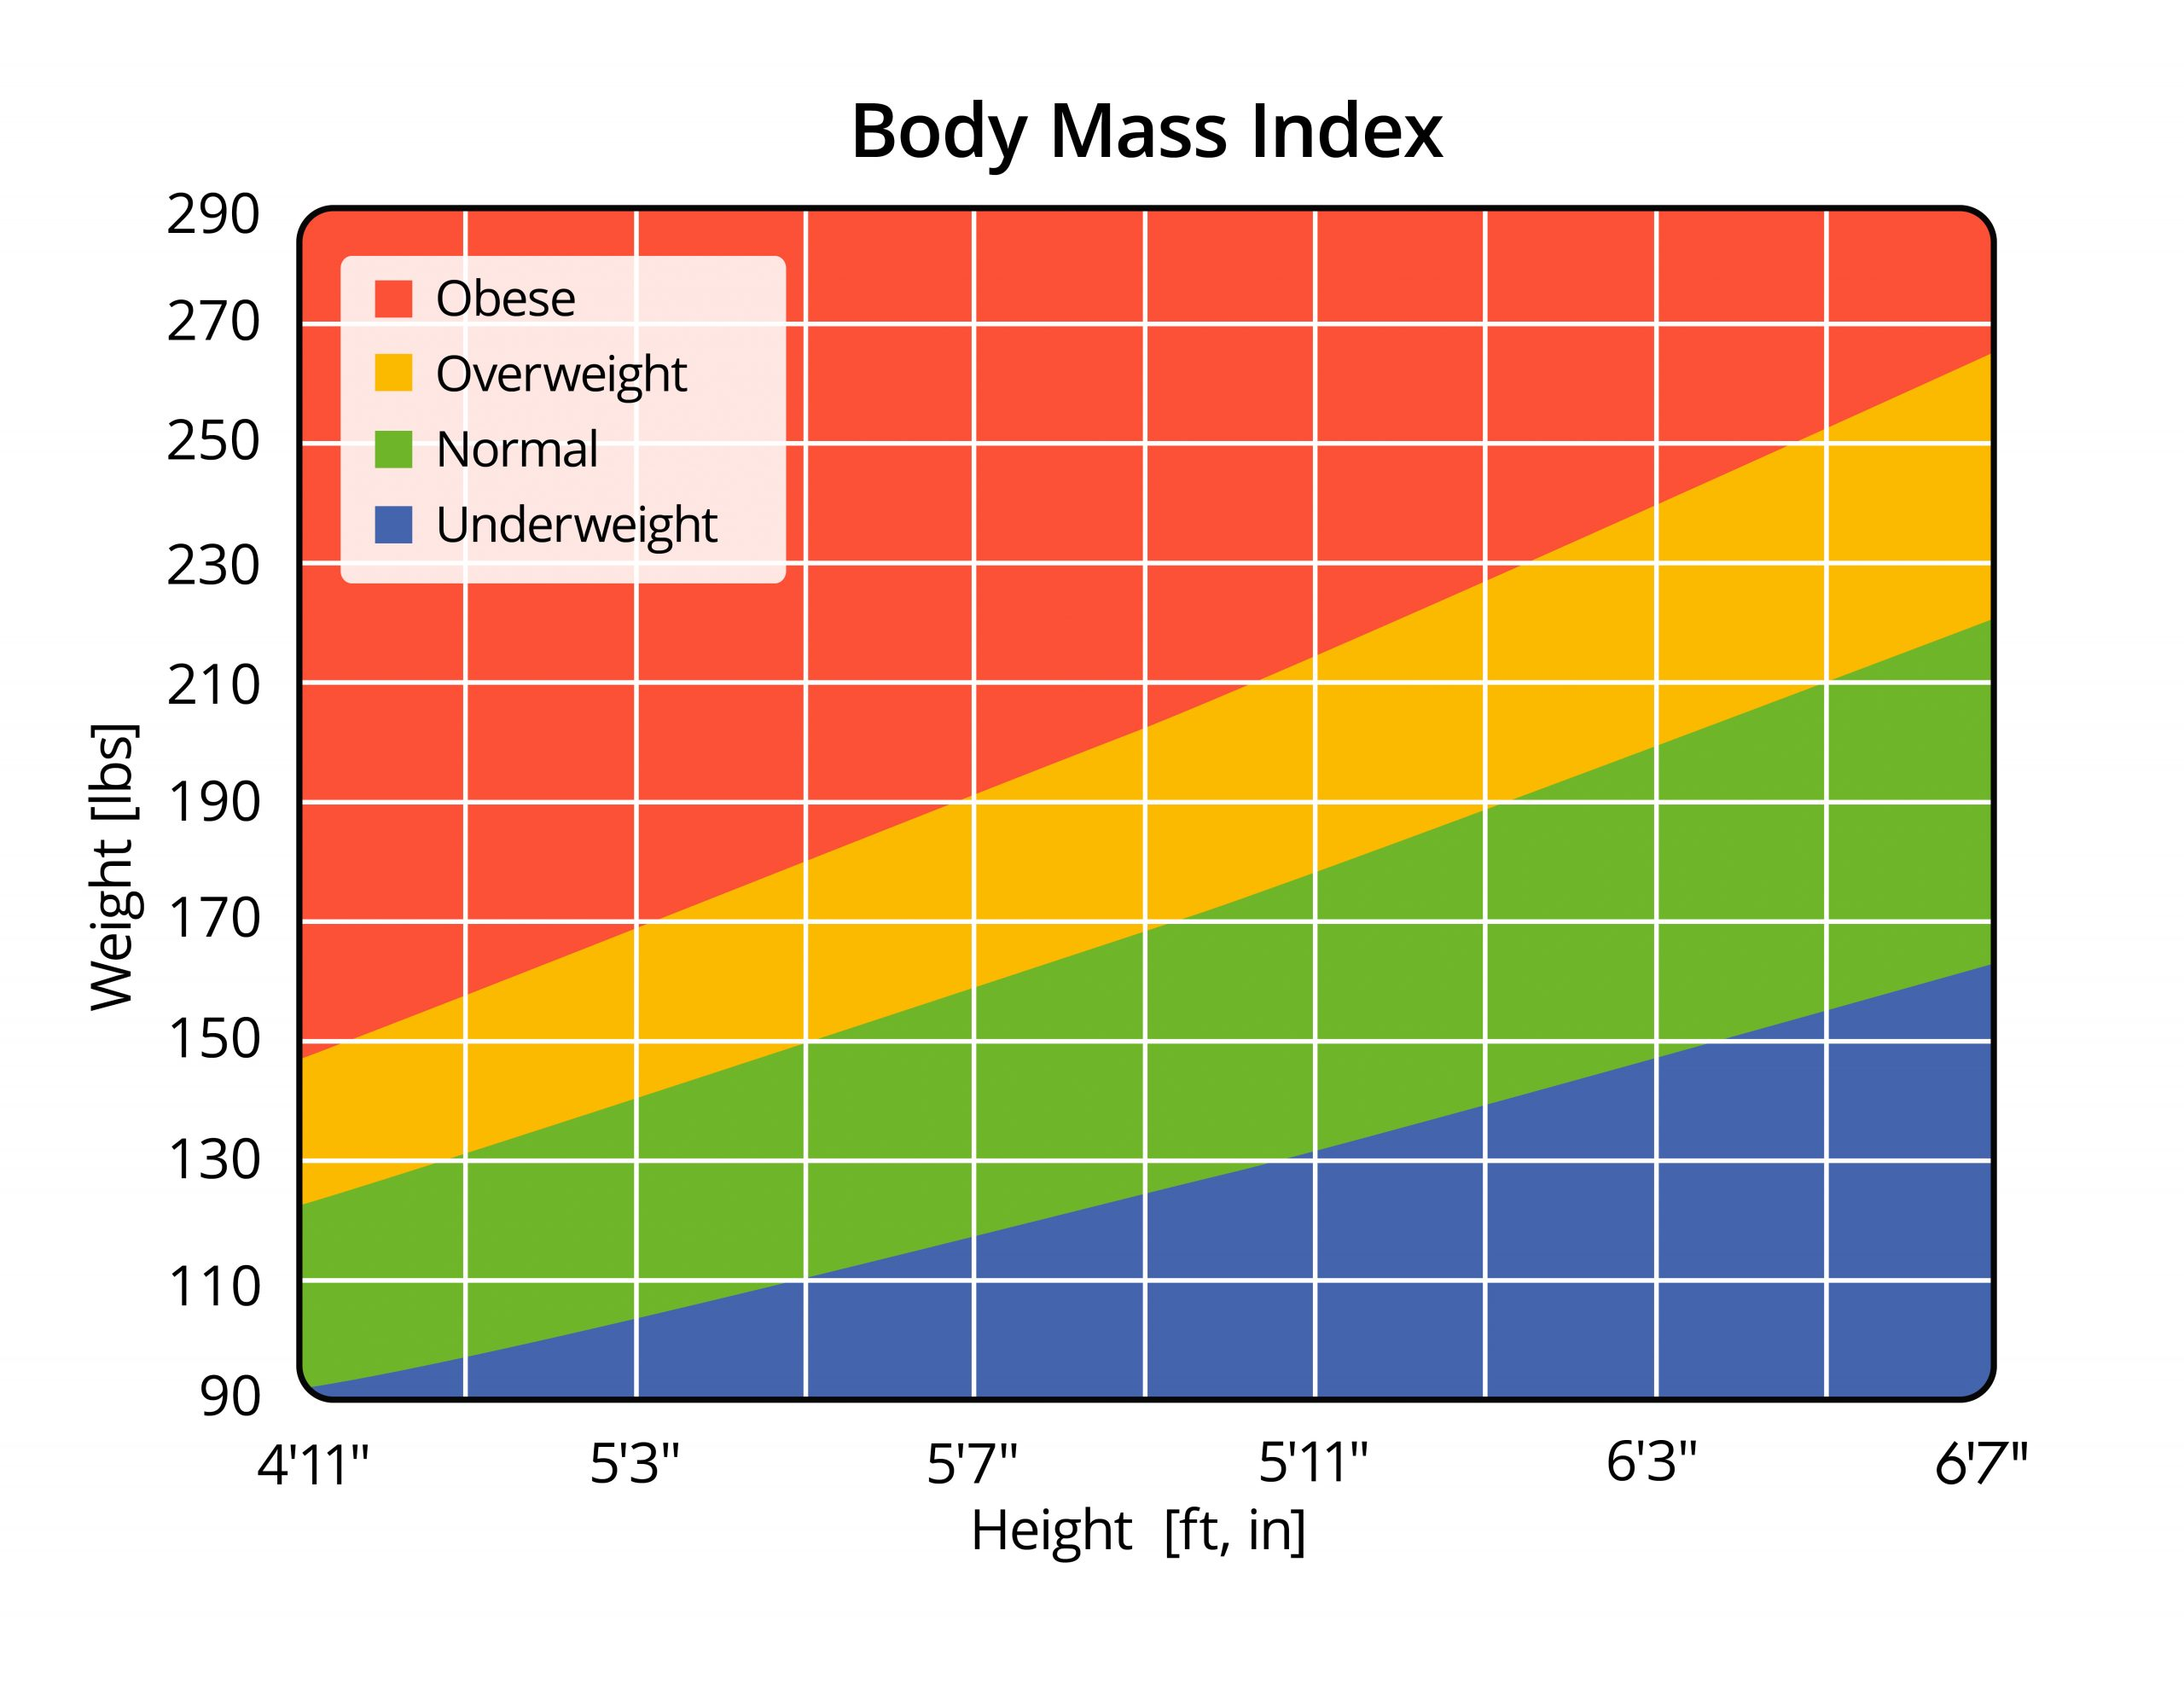 bmi chart in imperial values, weight status, height, weight, health